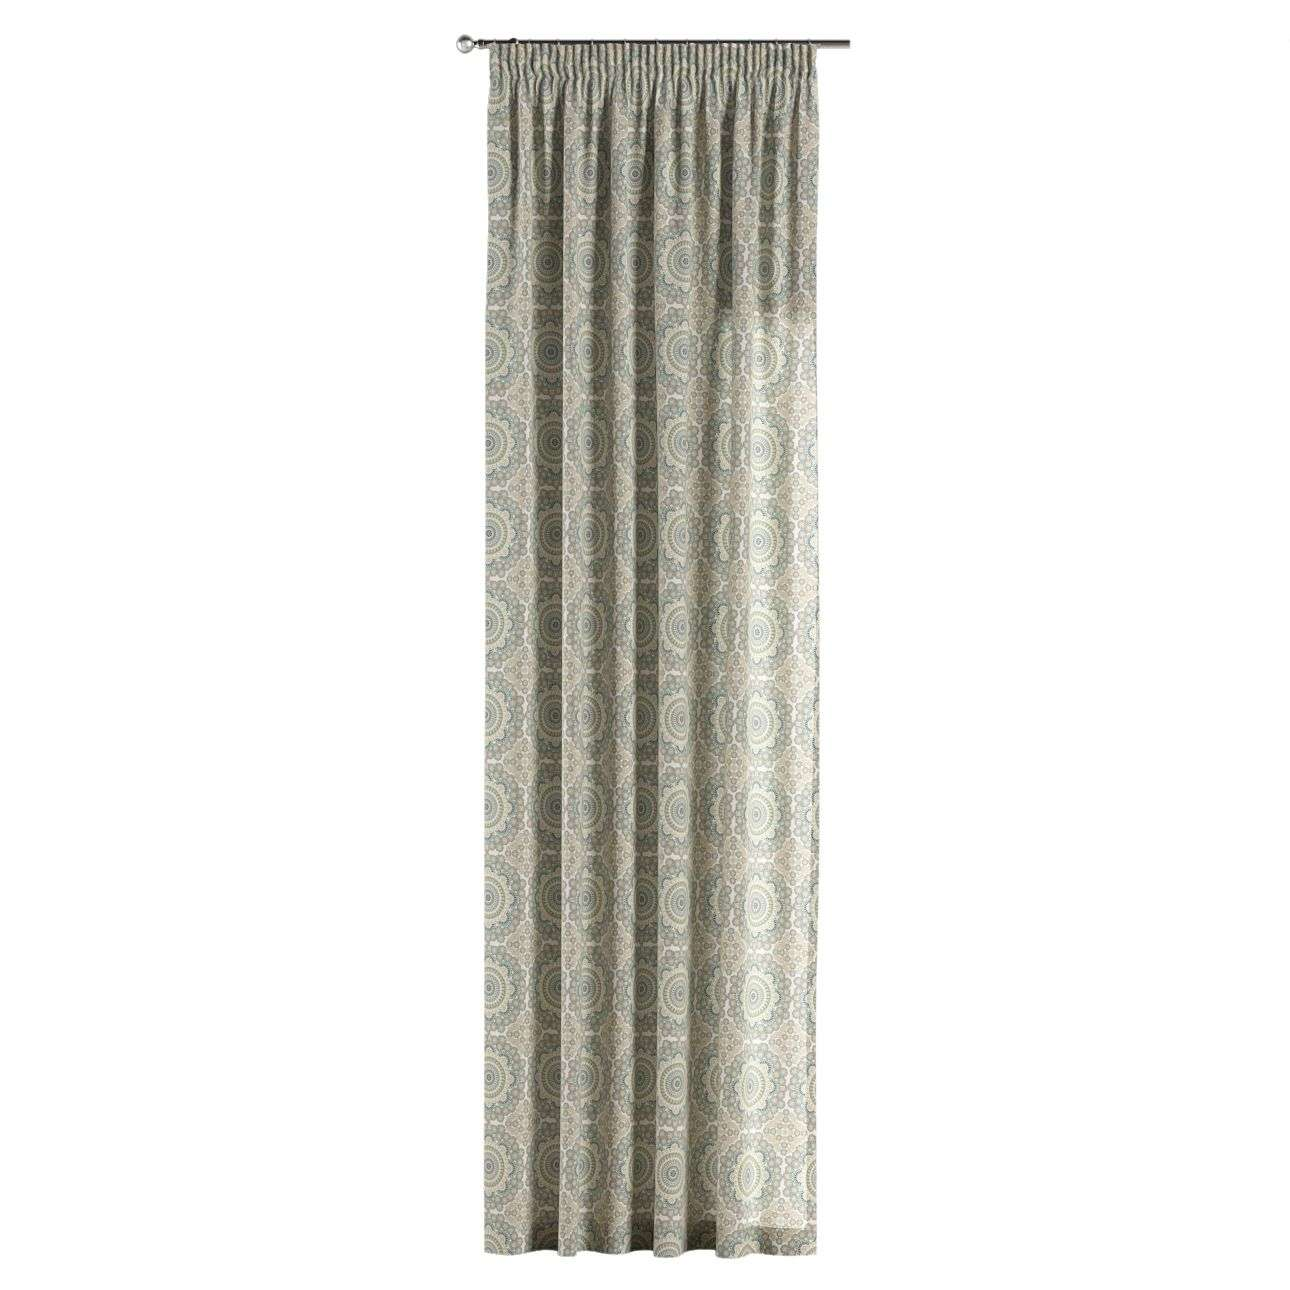 Pencil pleat curtains 130 x 260 cm (51 x 102 inch) in collection Comic Book & Geo Prints, fabric: 137-84